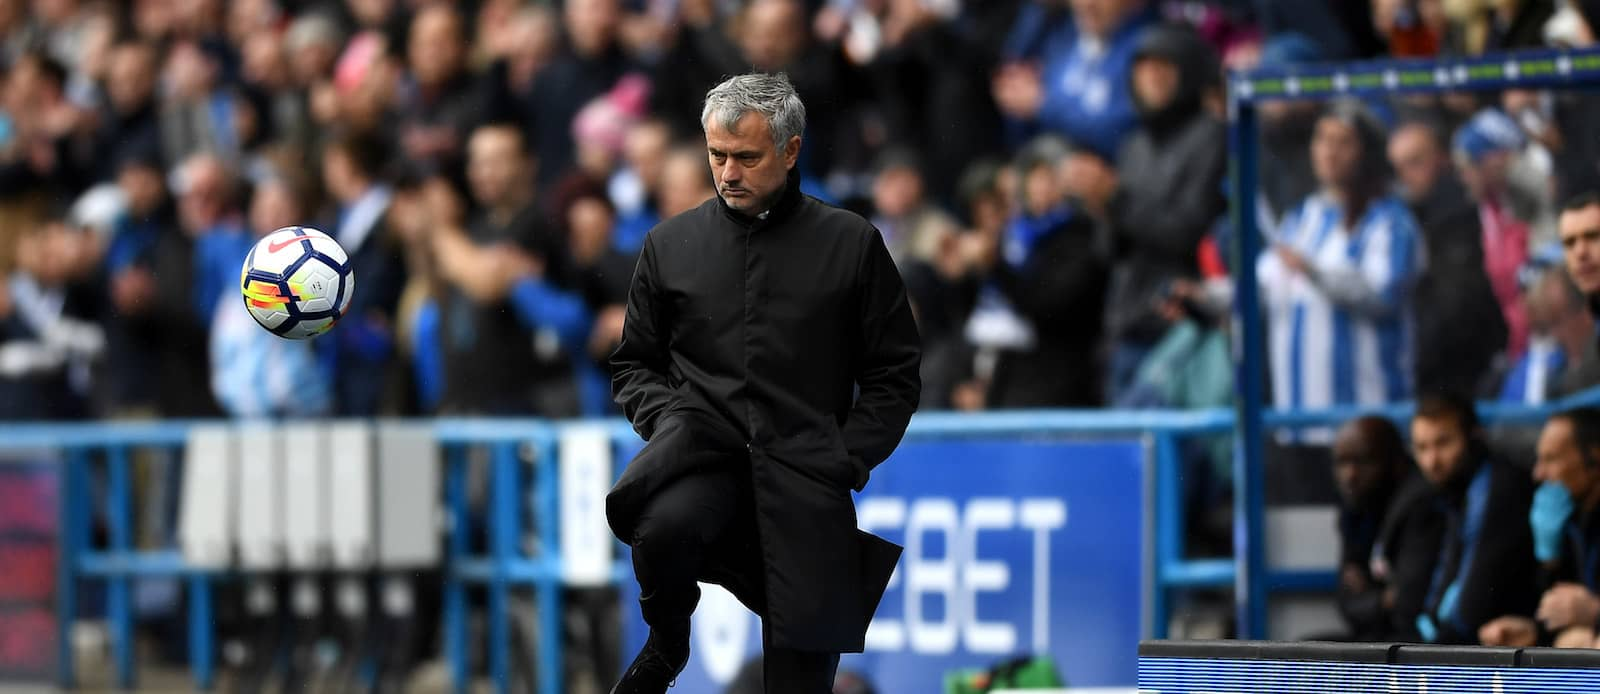 Jose Mourinho blames Manchester United's attitude for 2-1 defeat at Huddersfield Town